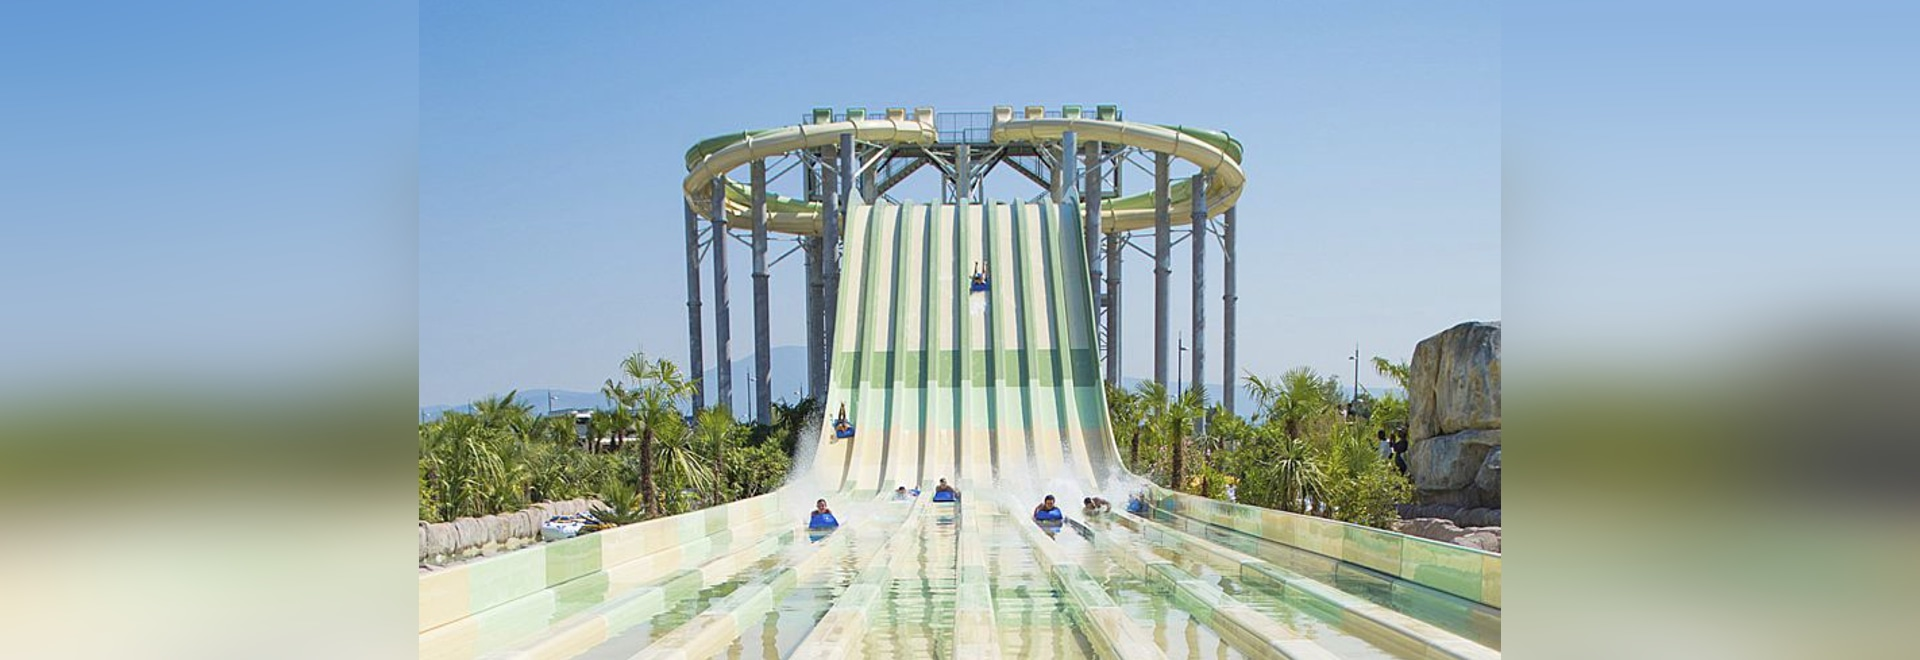 Splashworld Provence Waterpark Opens in France